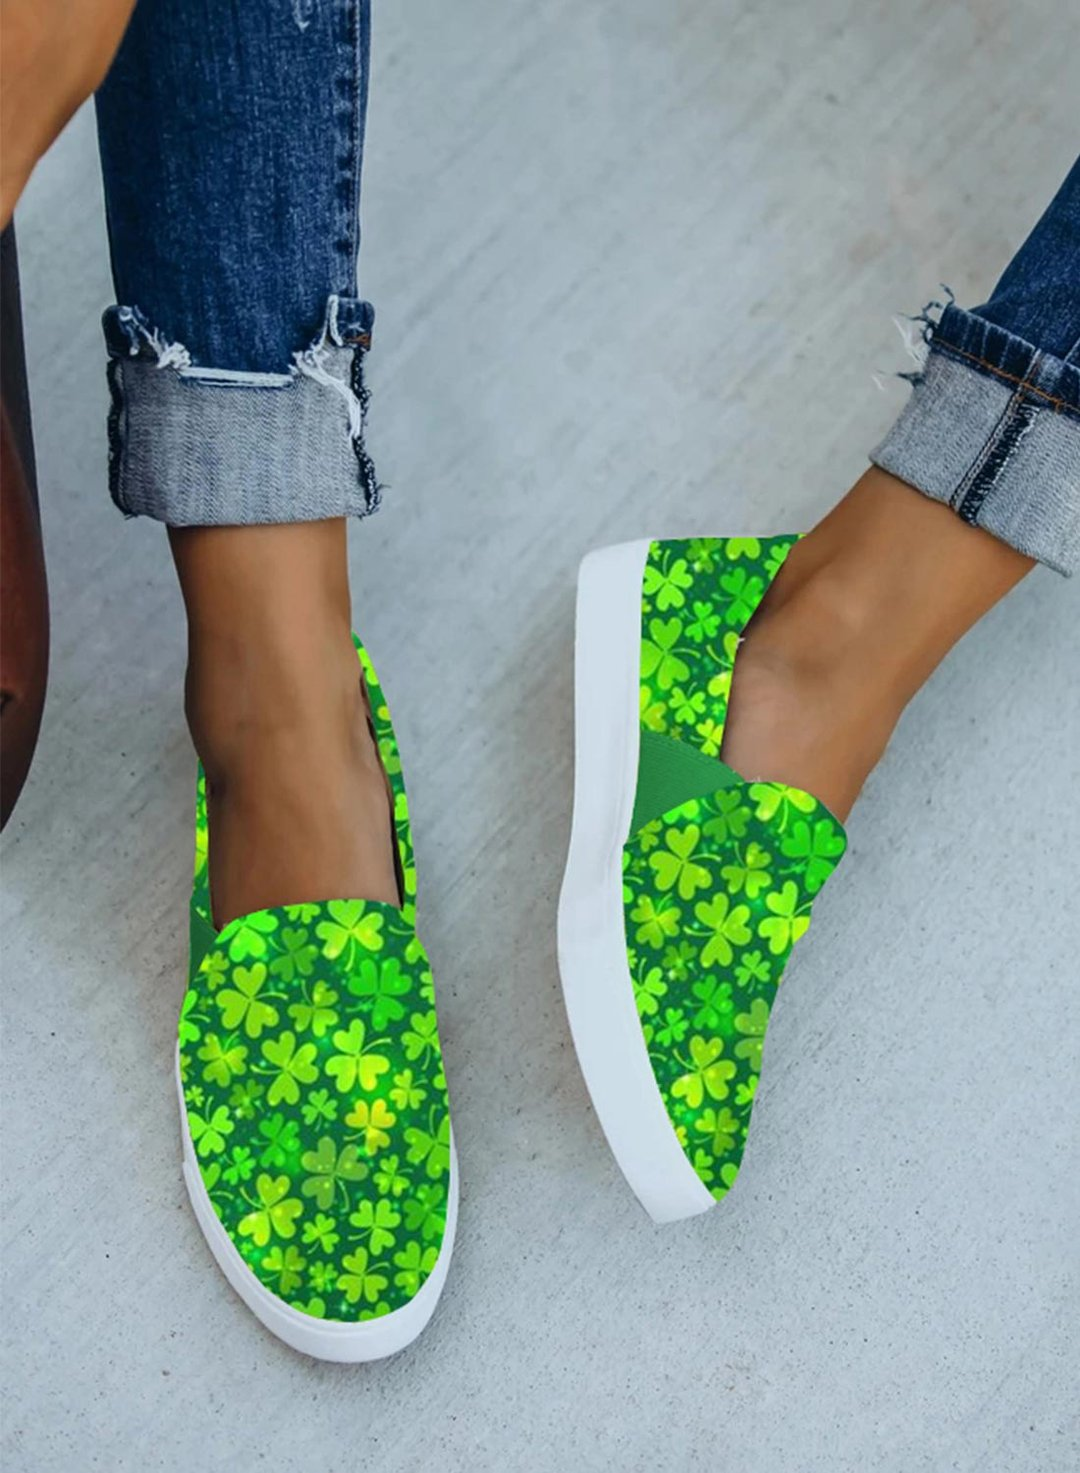 Green Women's Sneakers Canvas Festival Floral Sporty Casual Daily Indoor Outdoor Sneakers LC121011-9